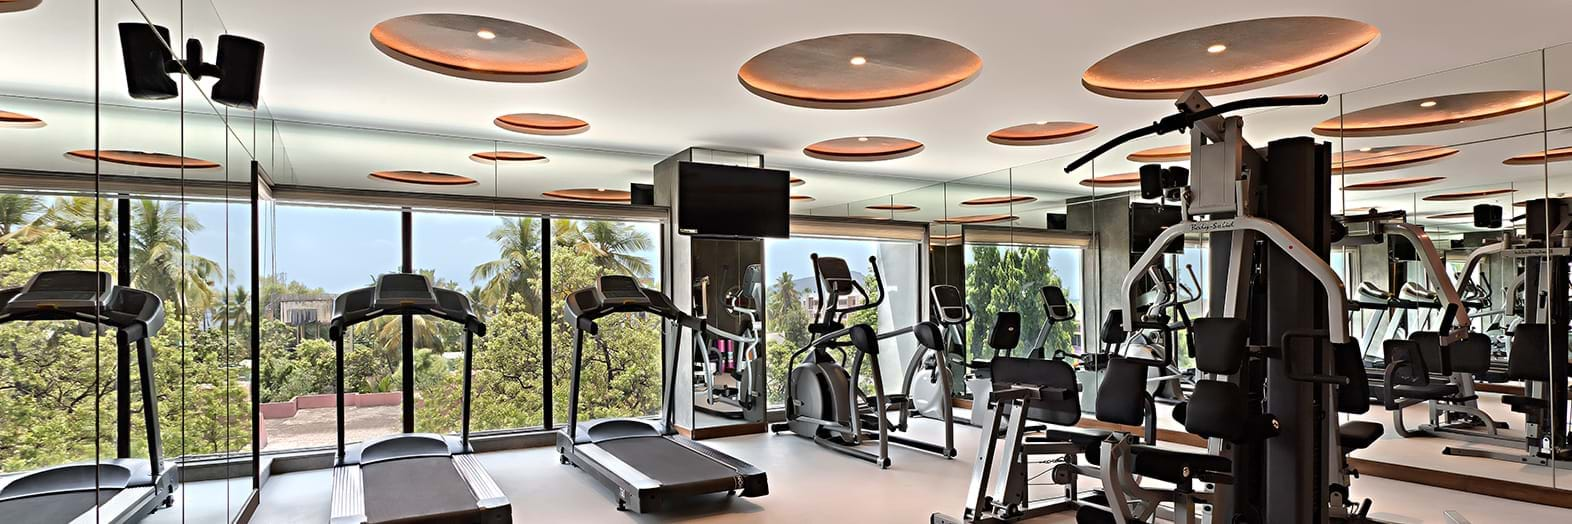 Services and Facilities in Vellore